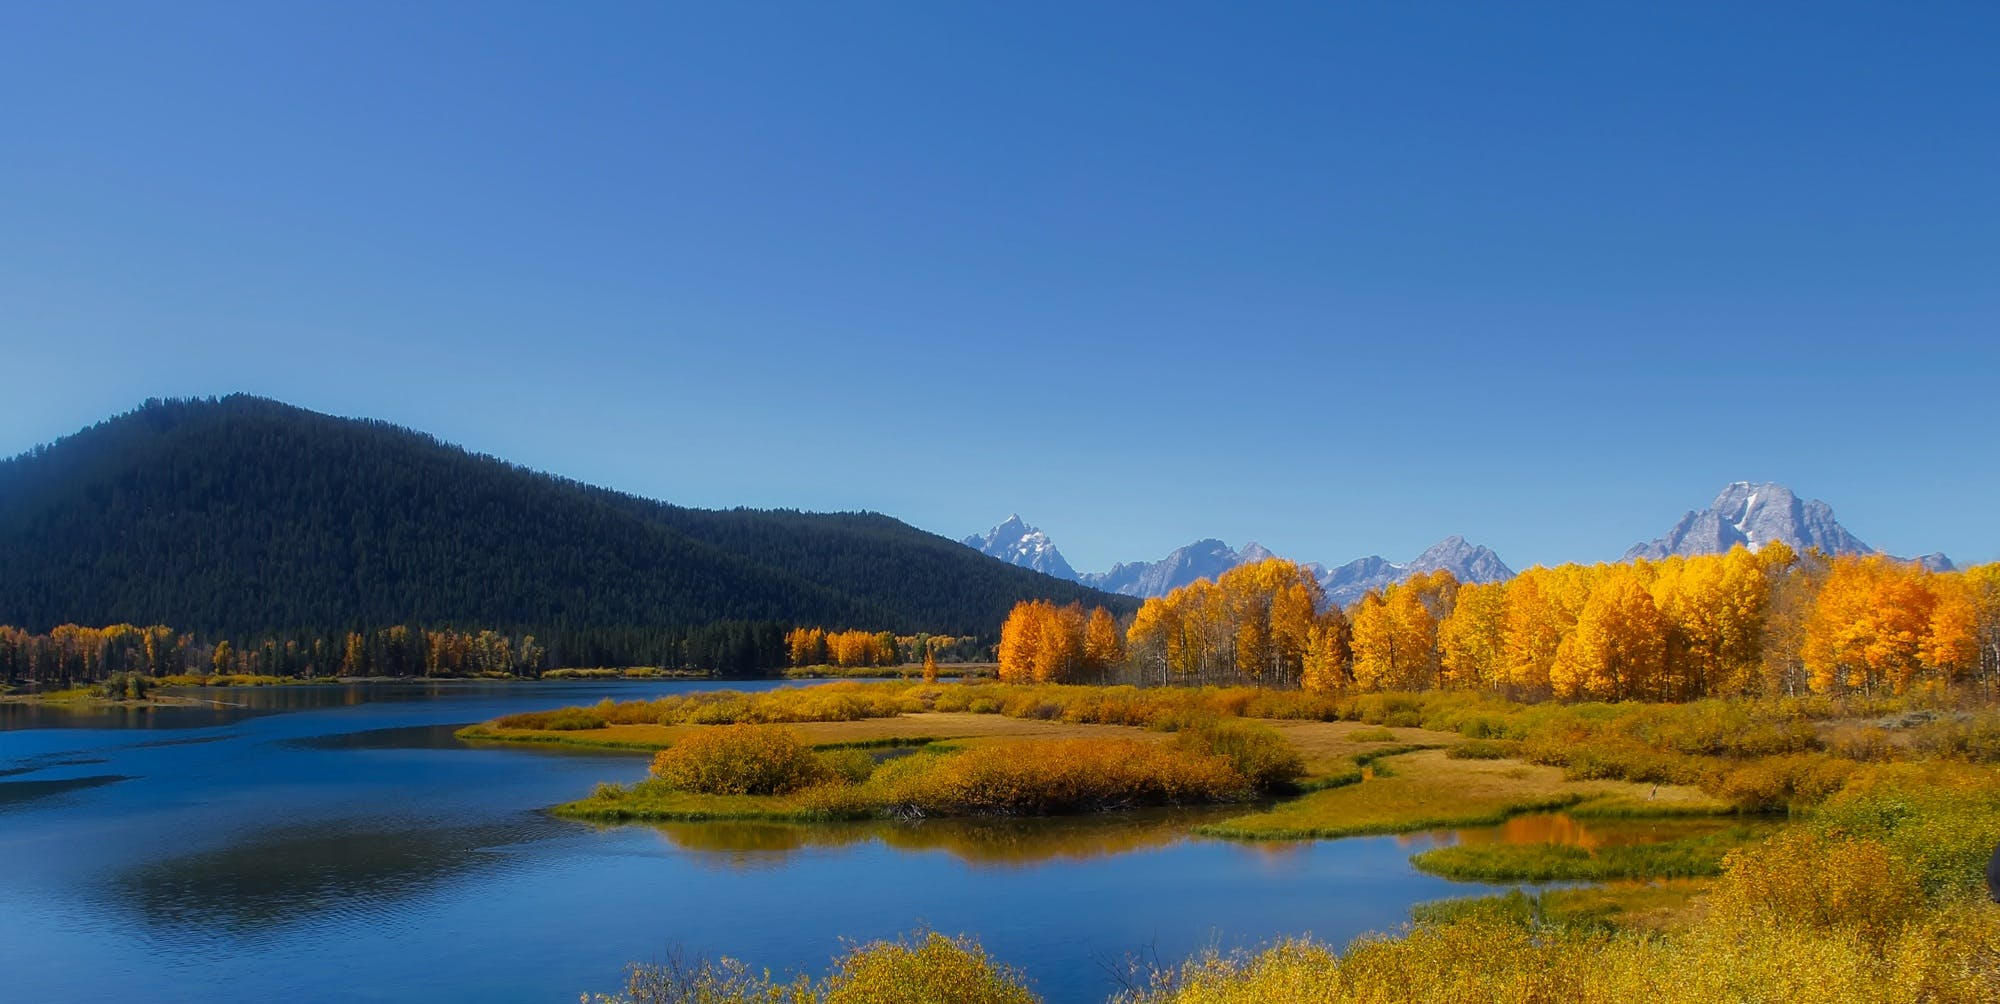 Panoramic Photography Body of Water Facing Mountain and Trees